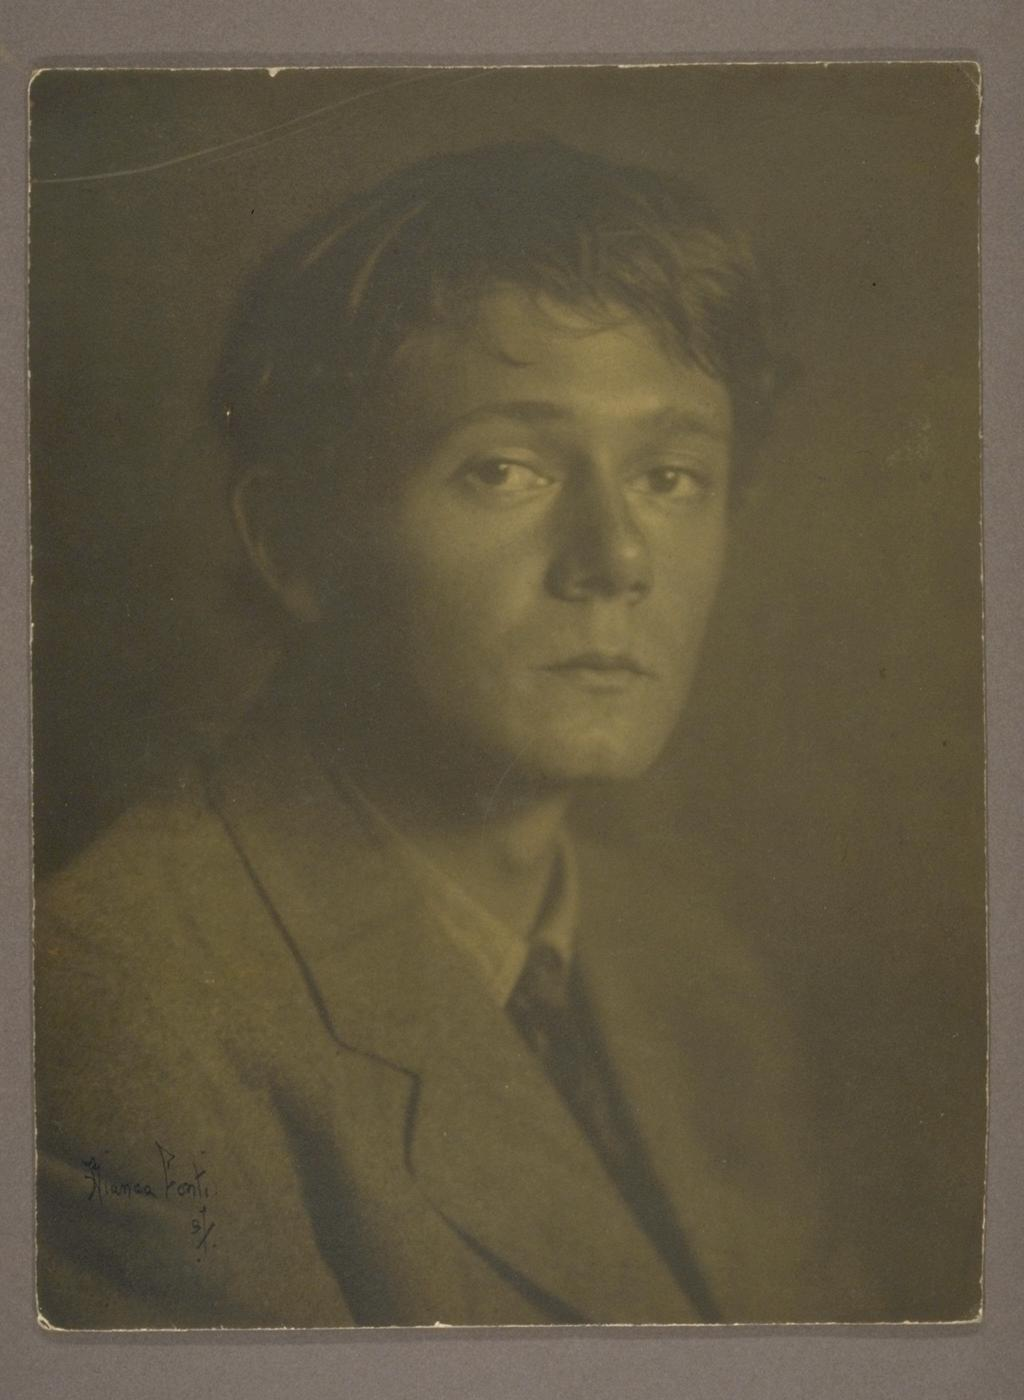 Photo of Clark Ashton Smith.